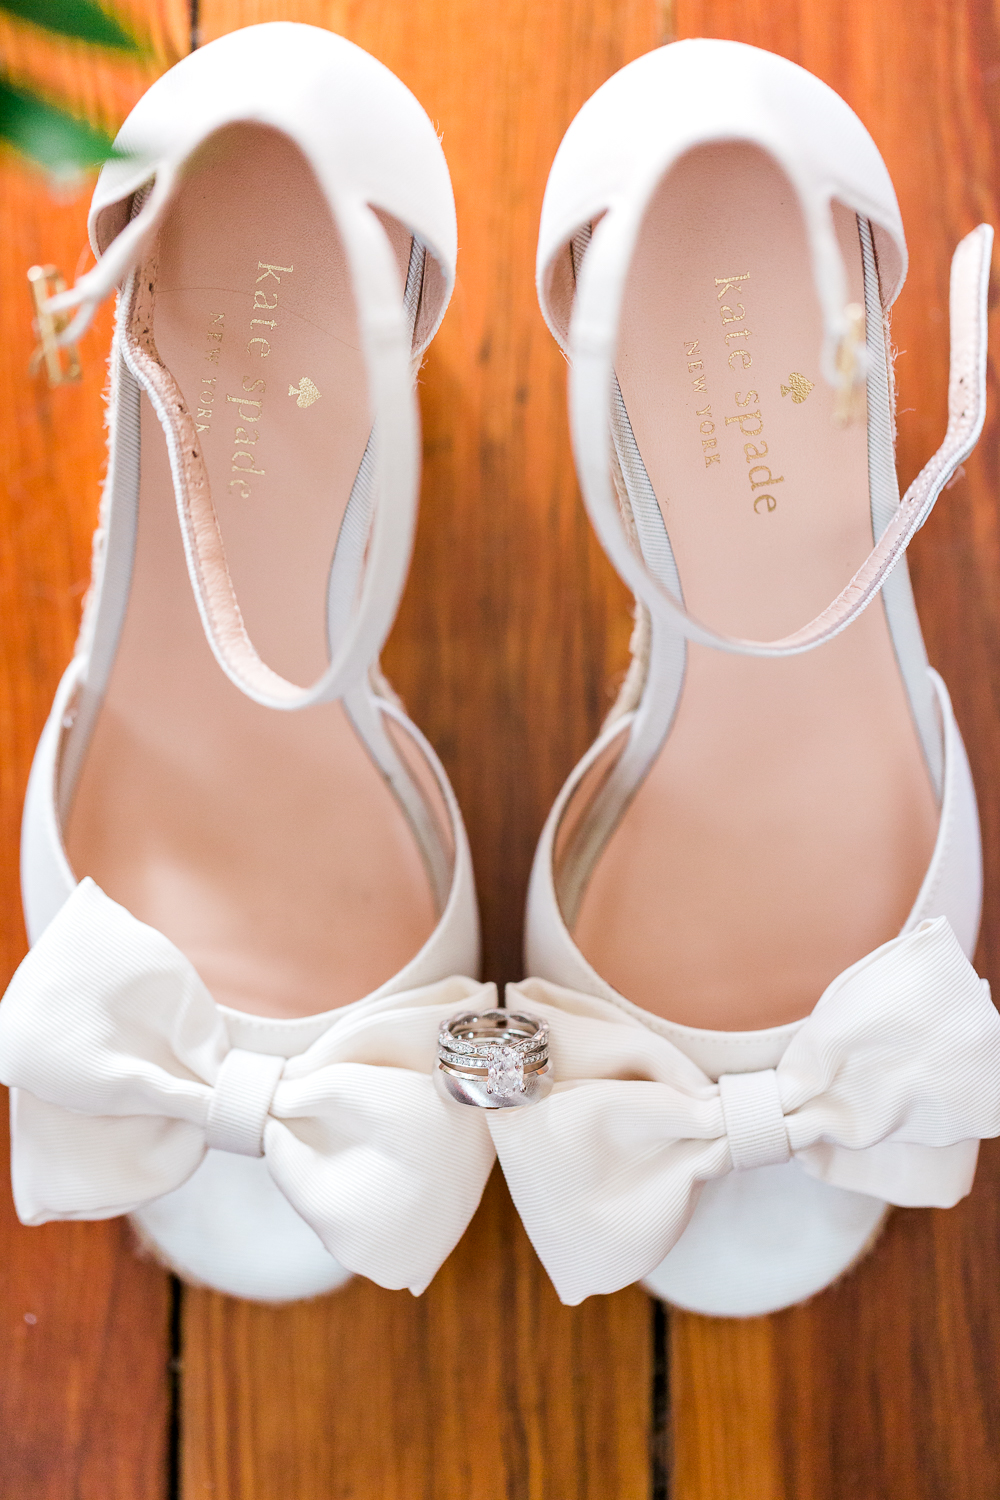 Kate Spade's white wedding shoes and wedding bands